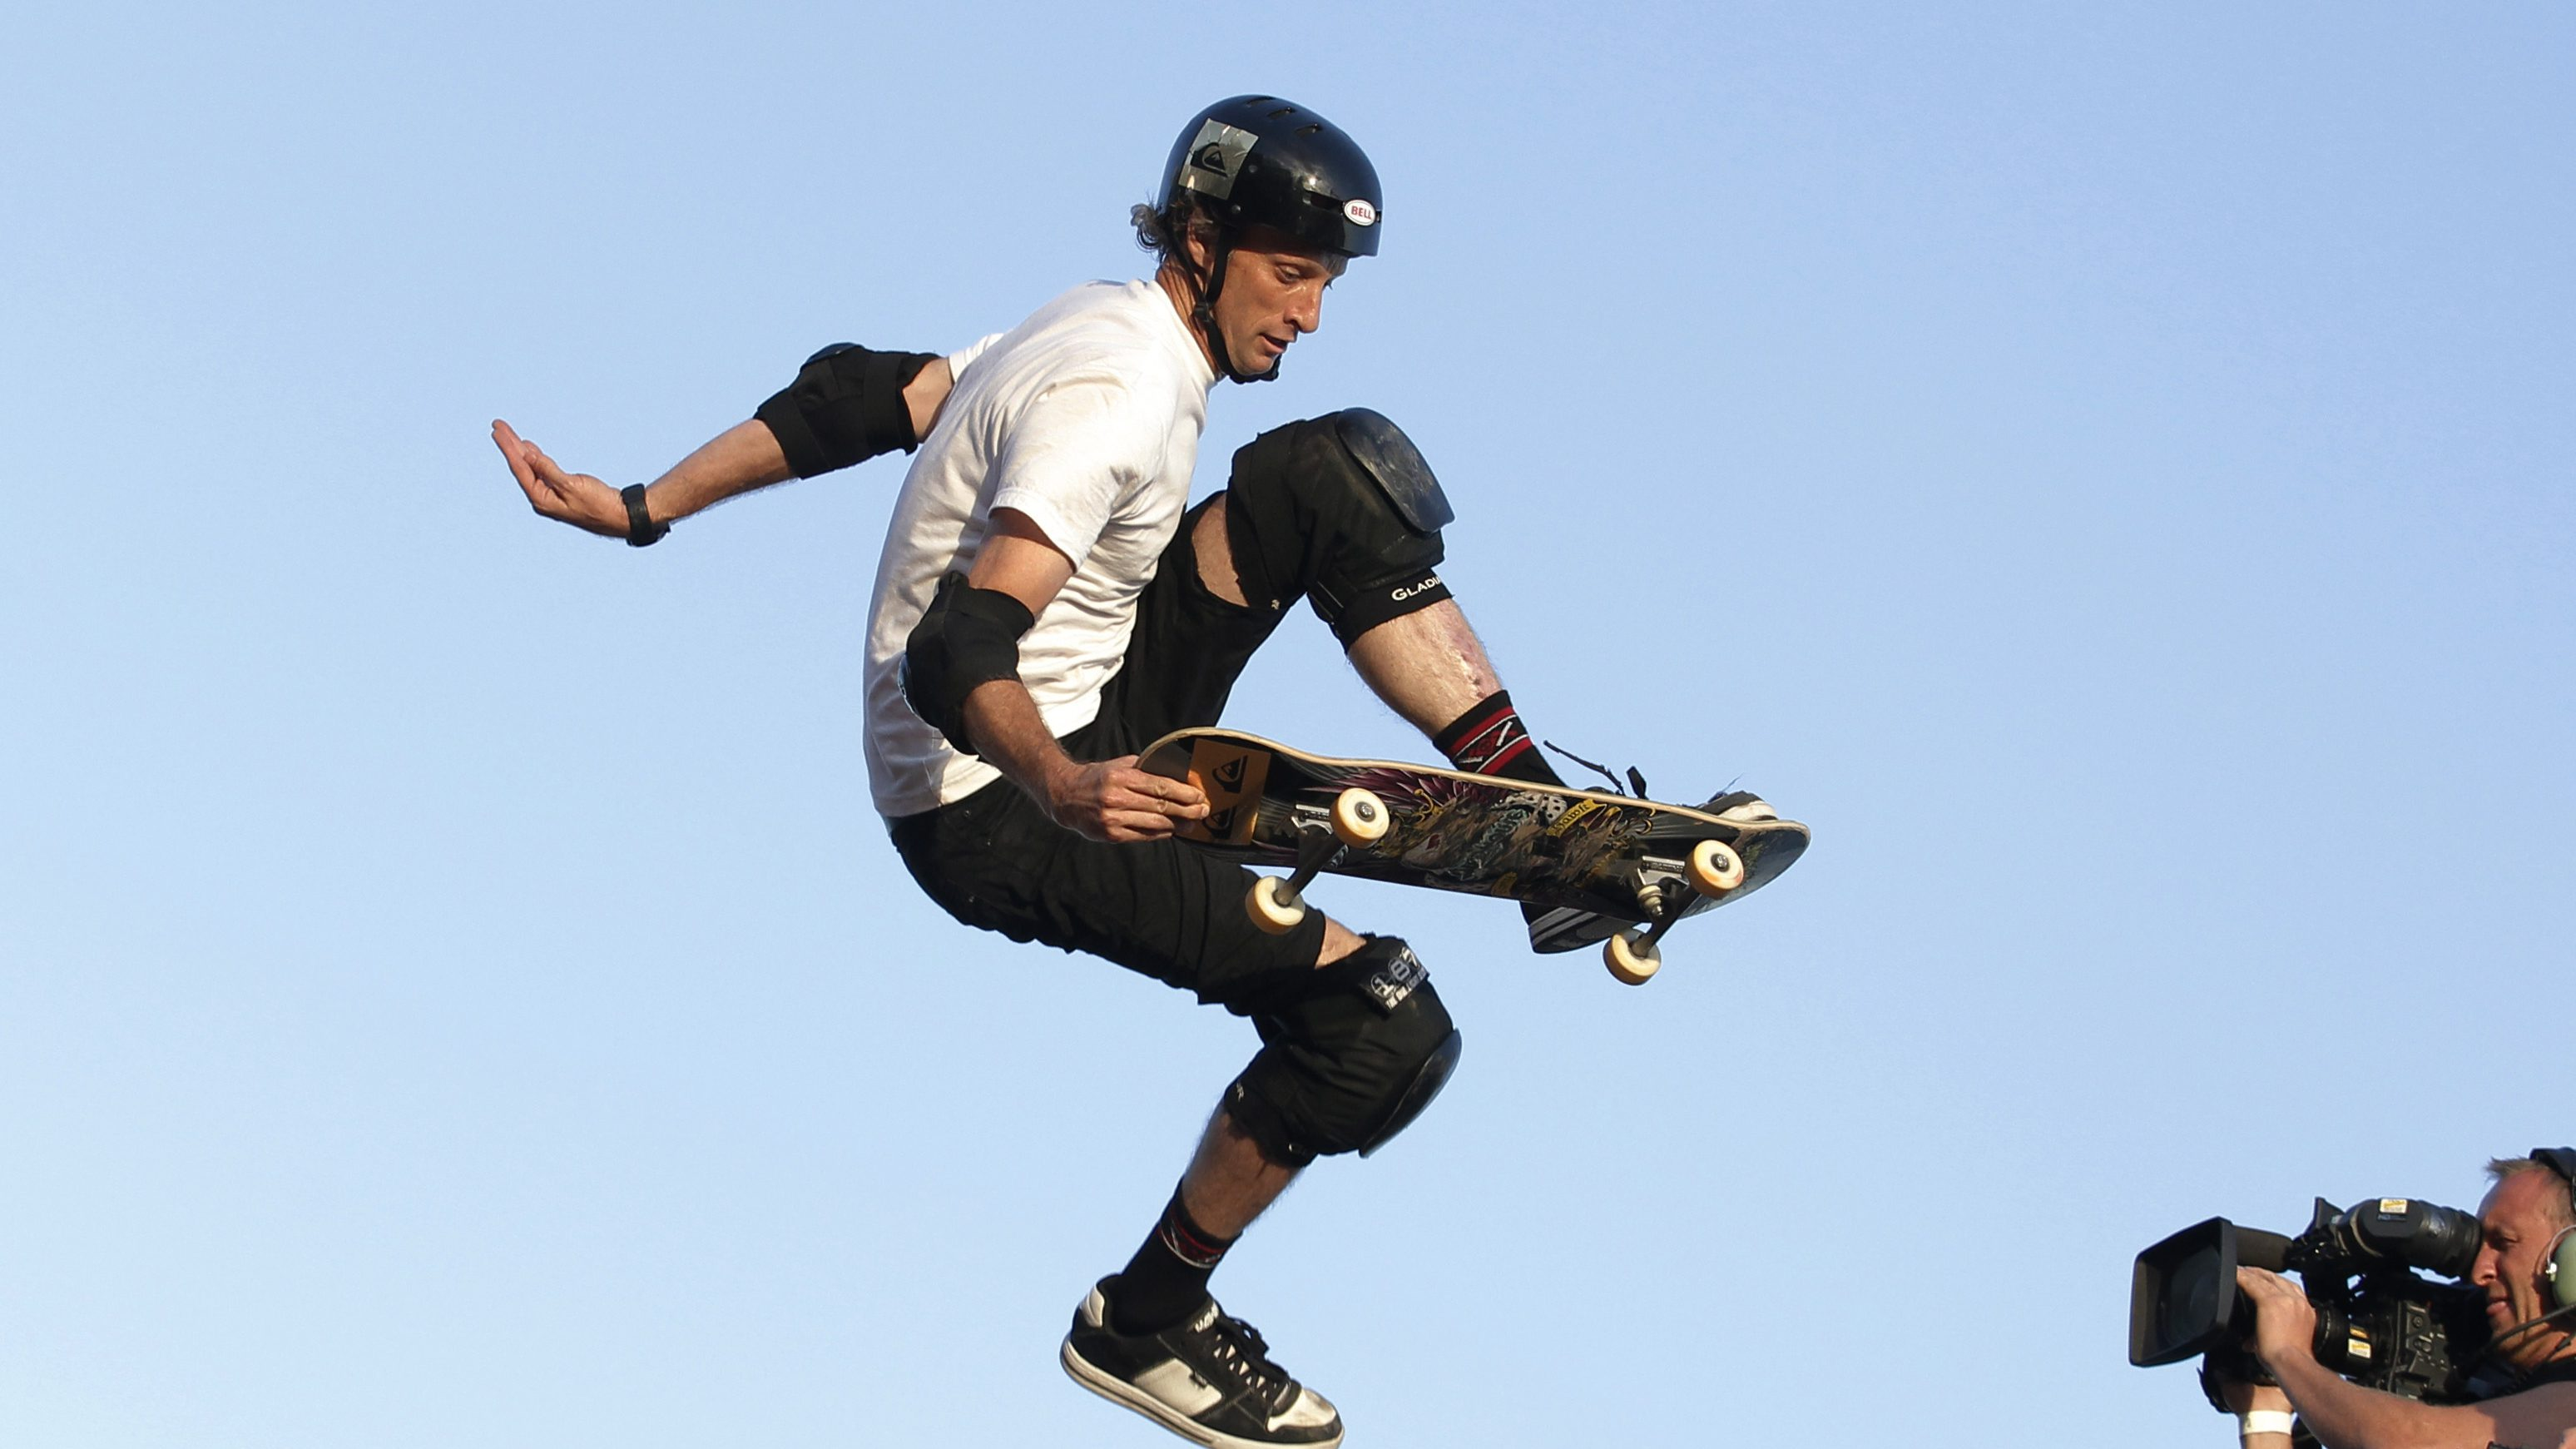 skateboarder tony hawk said he had to destroy his brand to learn its